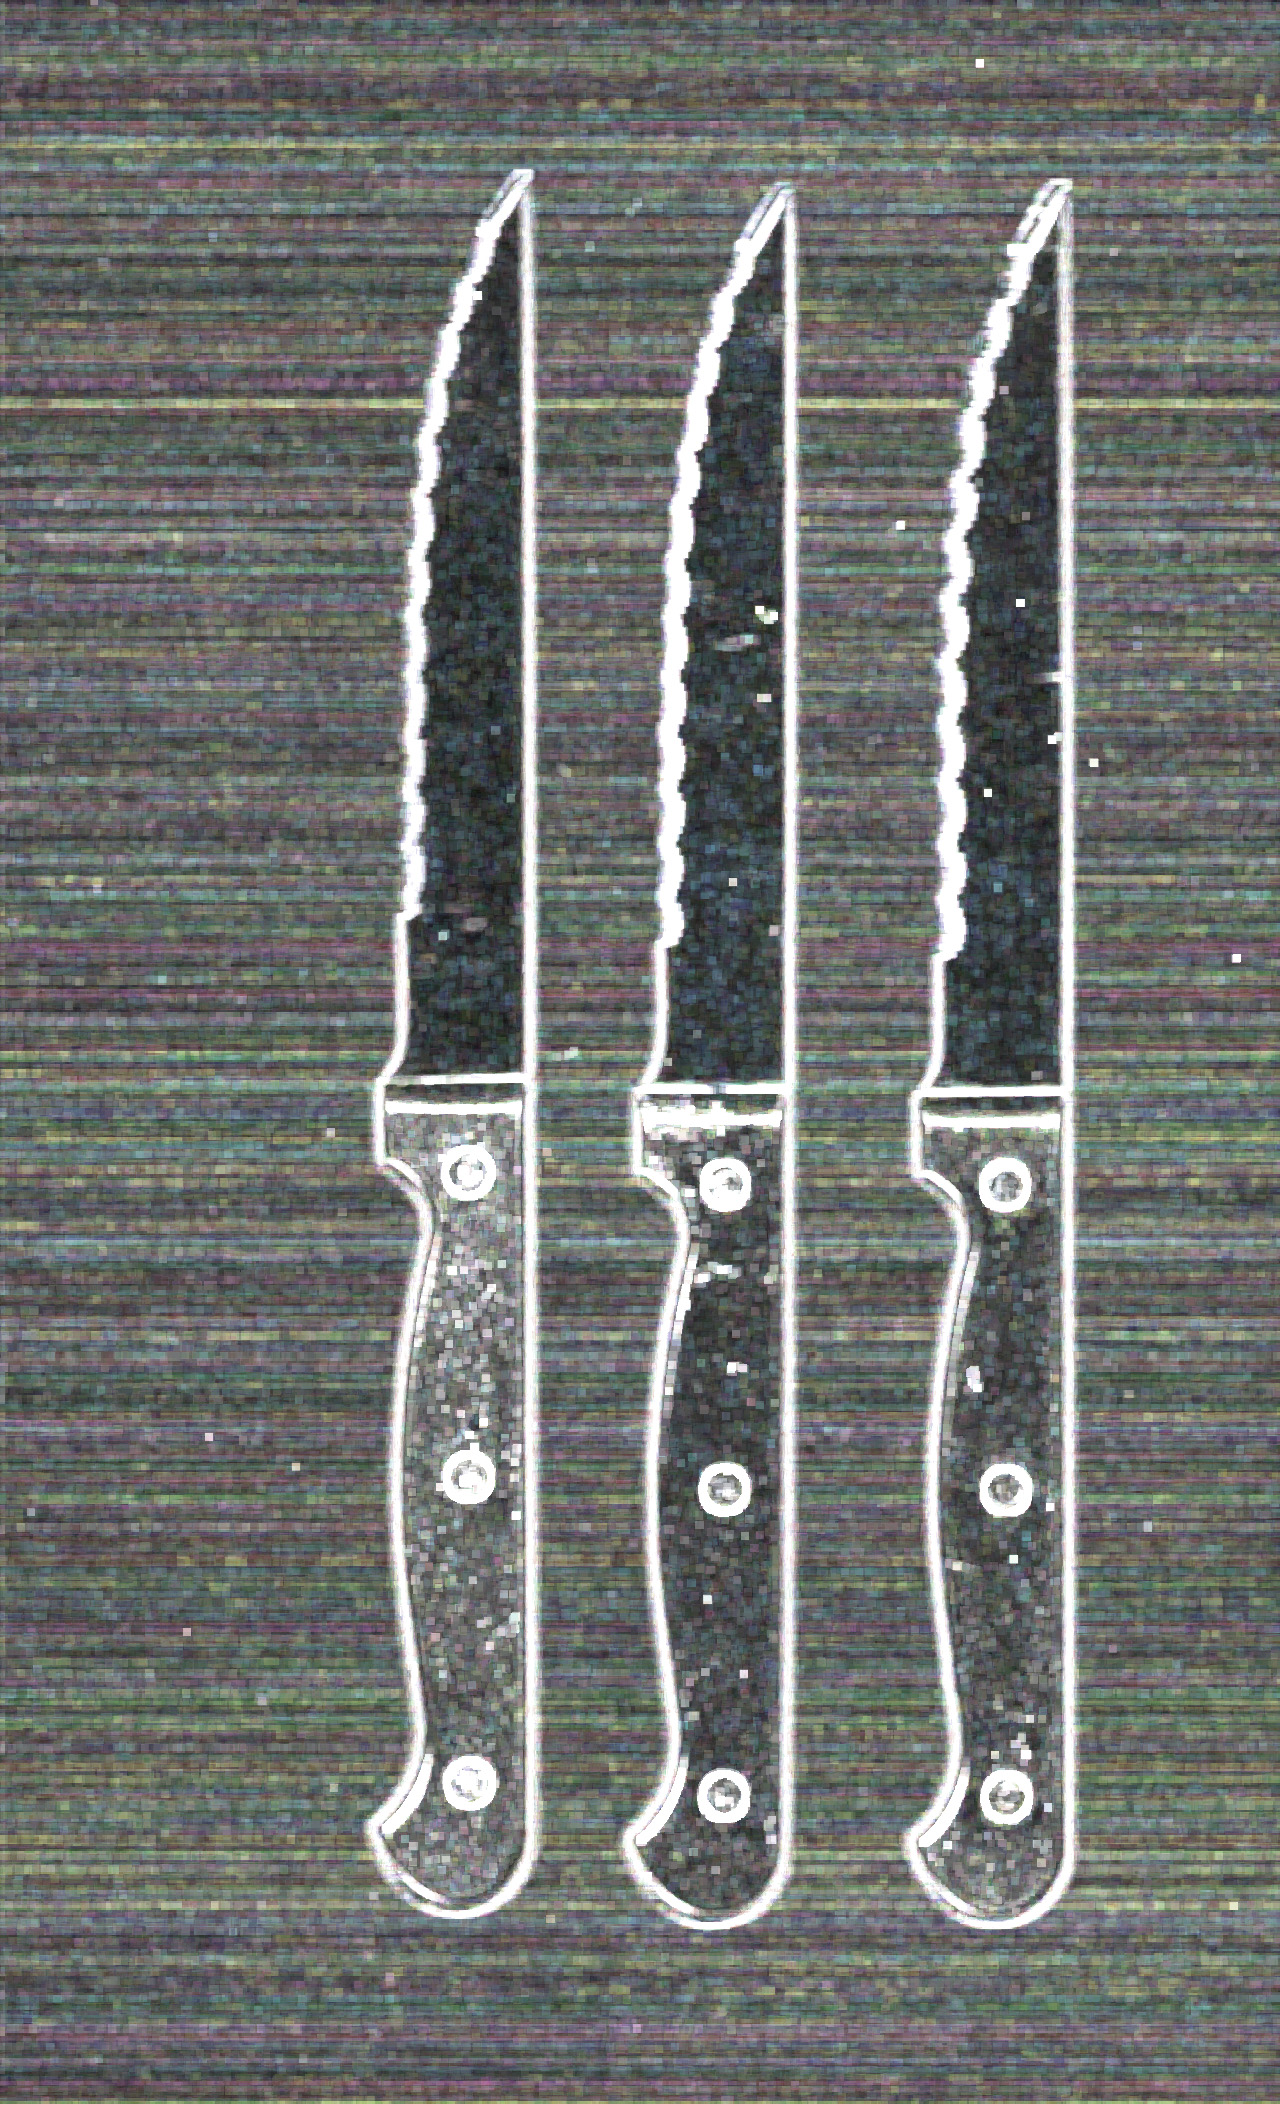 scans of cuttlery, knives with a grainy effect